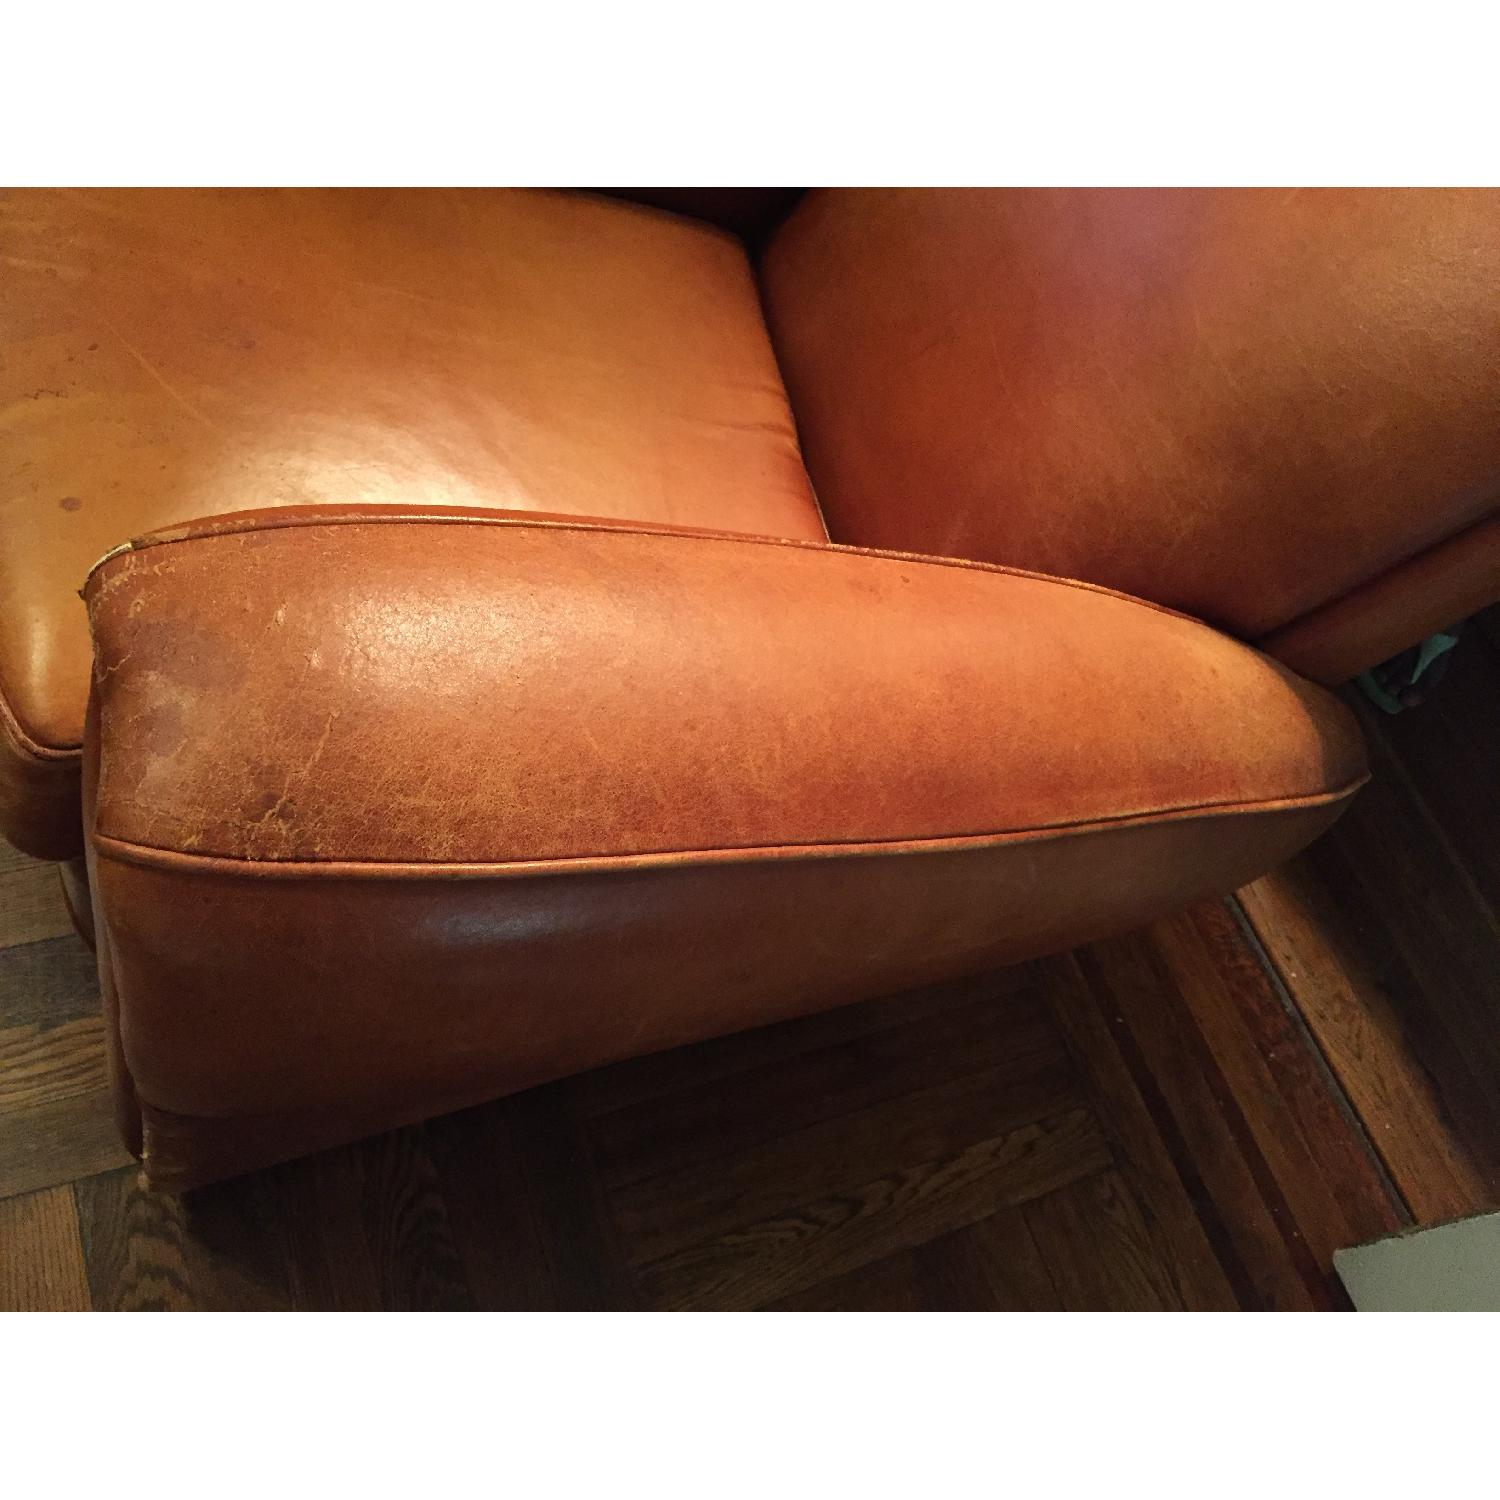 Portico Leather Club Chair - image-15